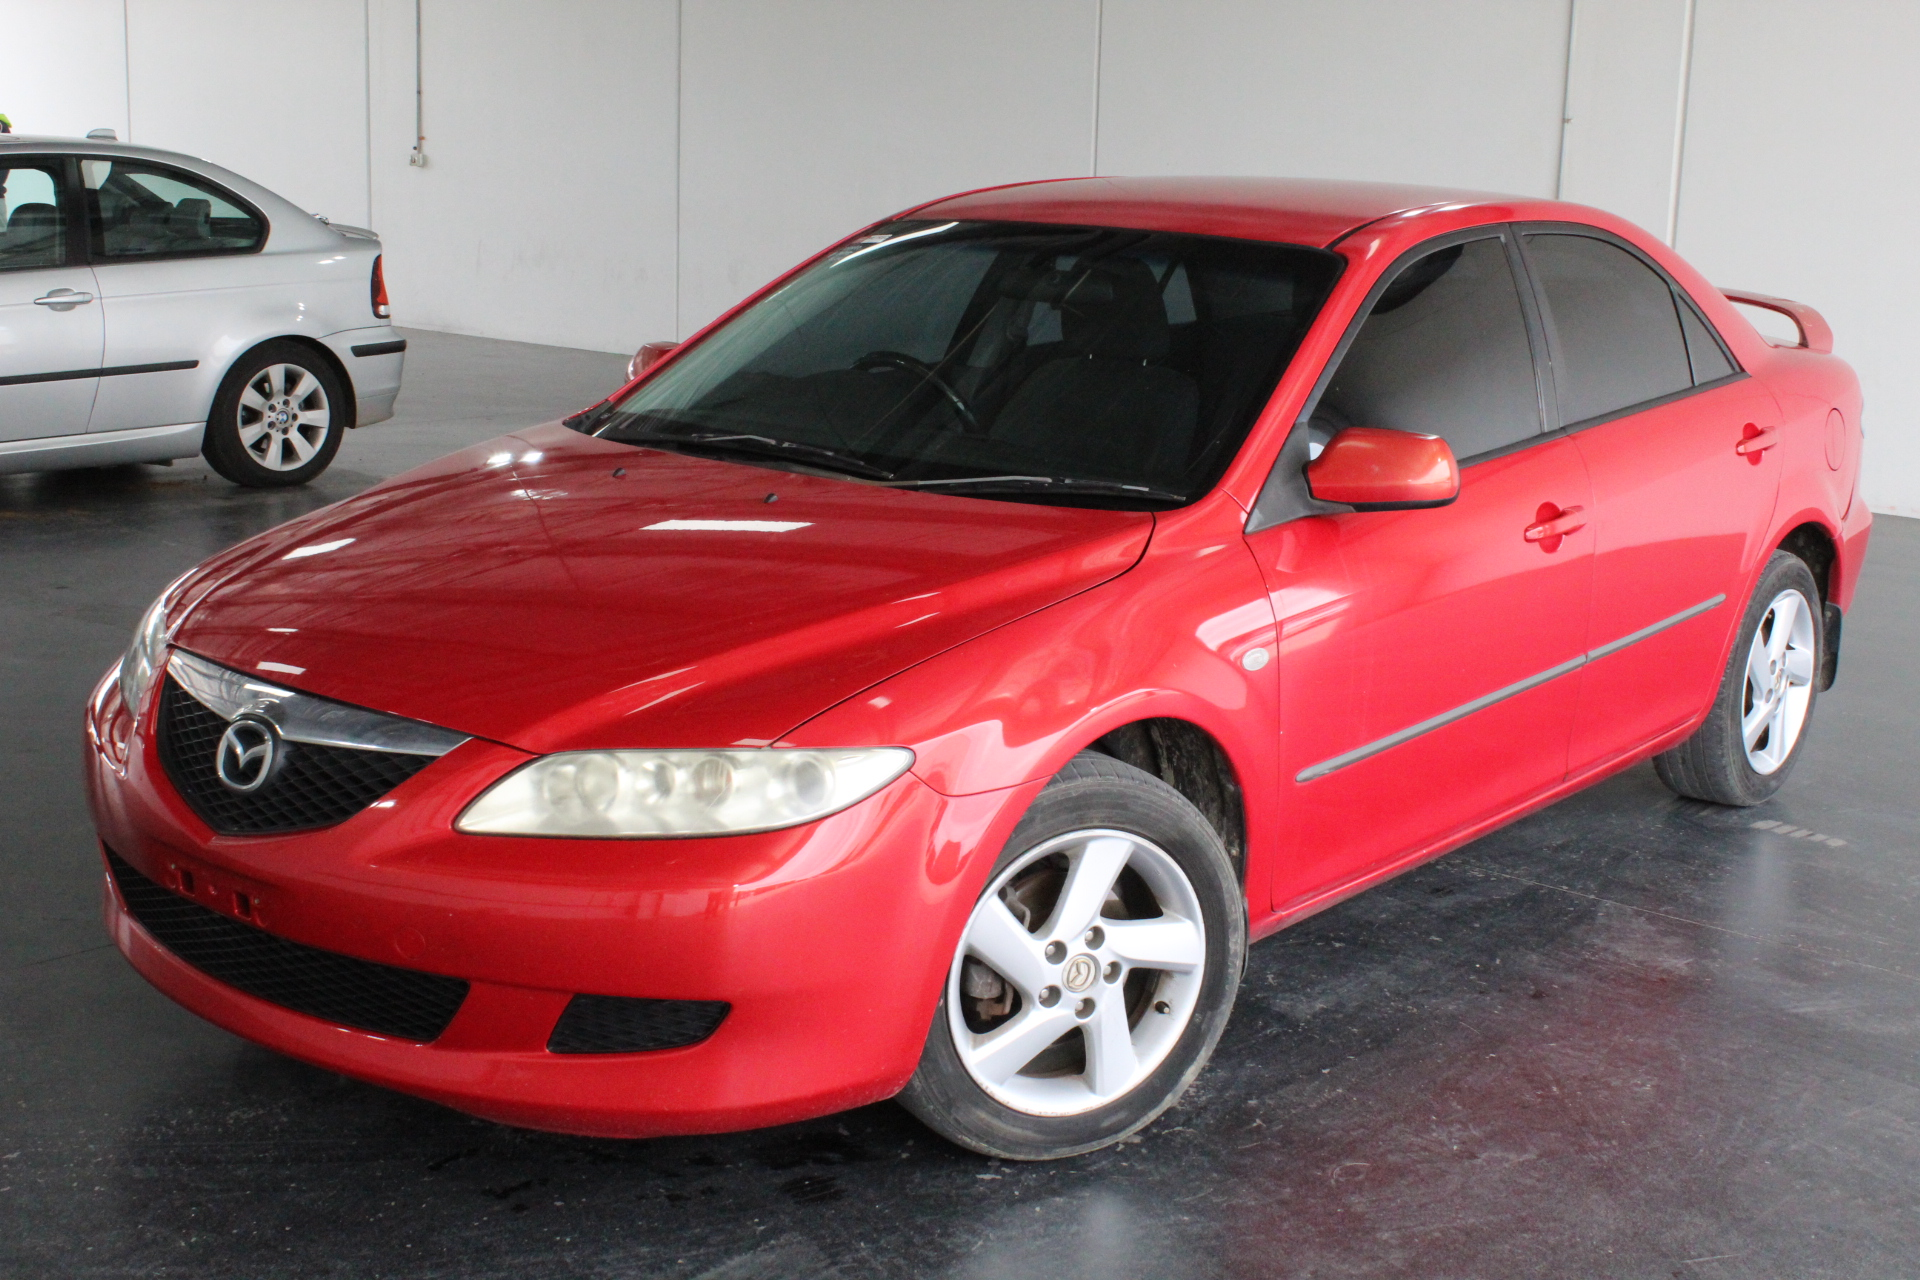 2005 Mazda 6 Classic GG Manual Sedan